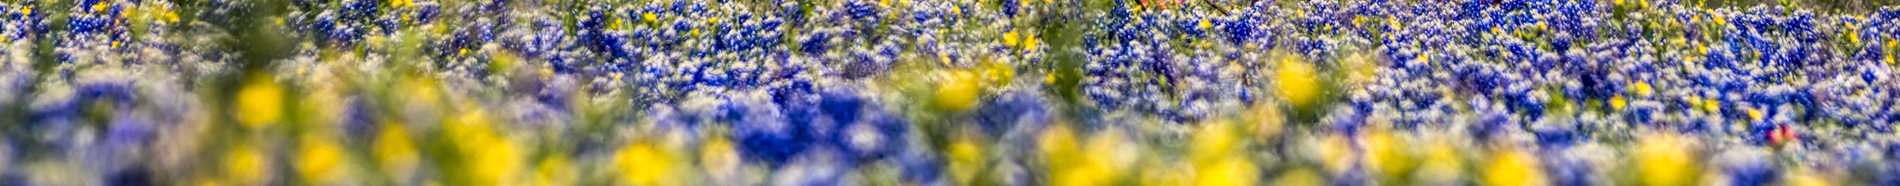 field of bluebonnets and pansies, foreground out of focus